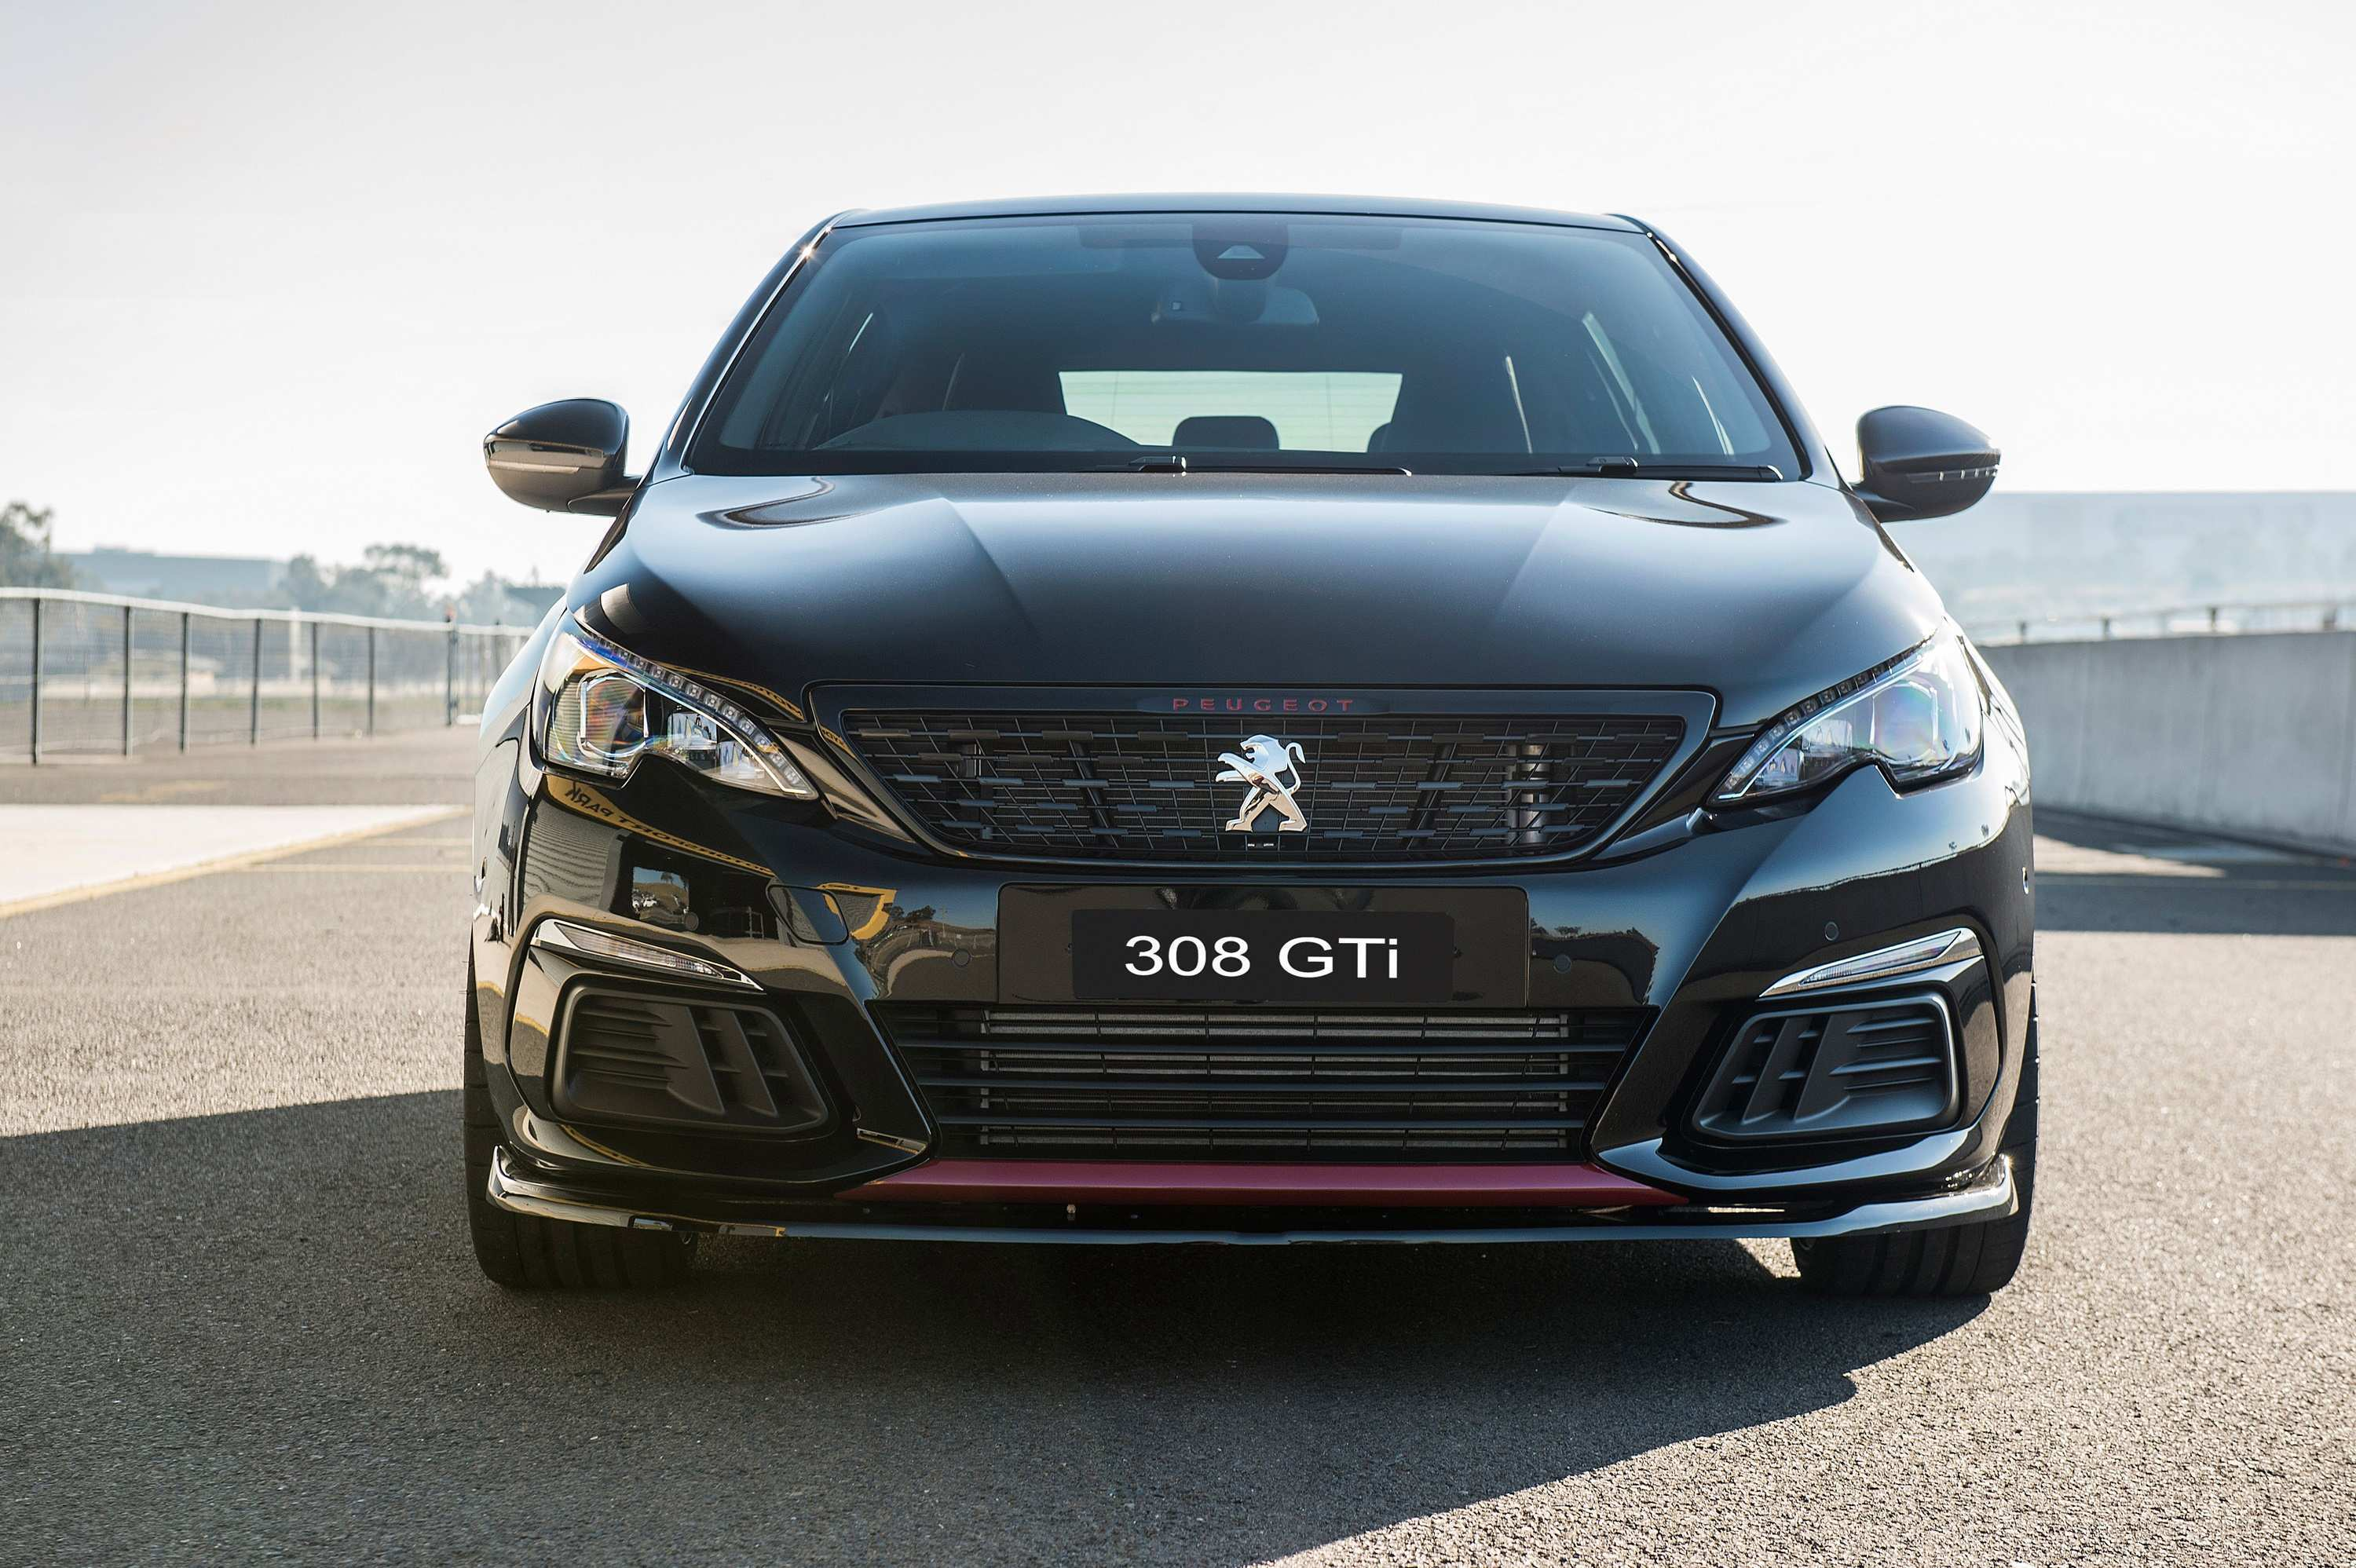 96 The 2019 Peugeot 308 Gti Redesign And Concept